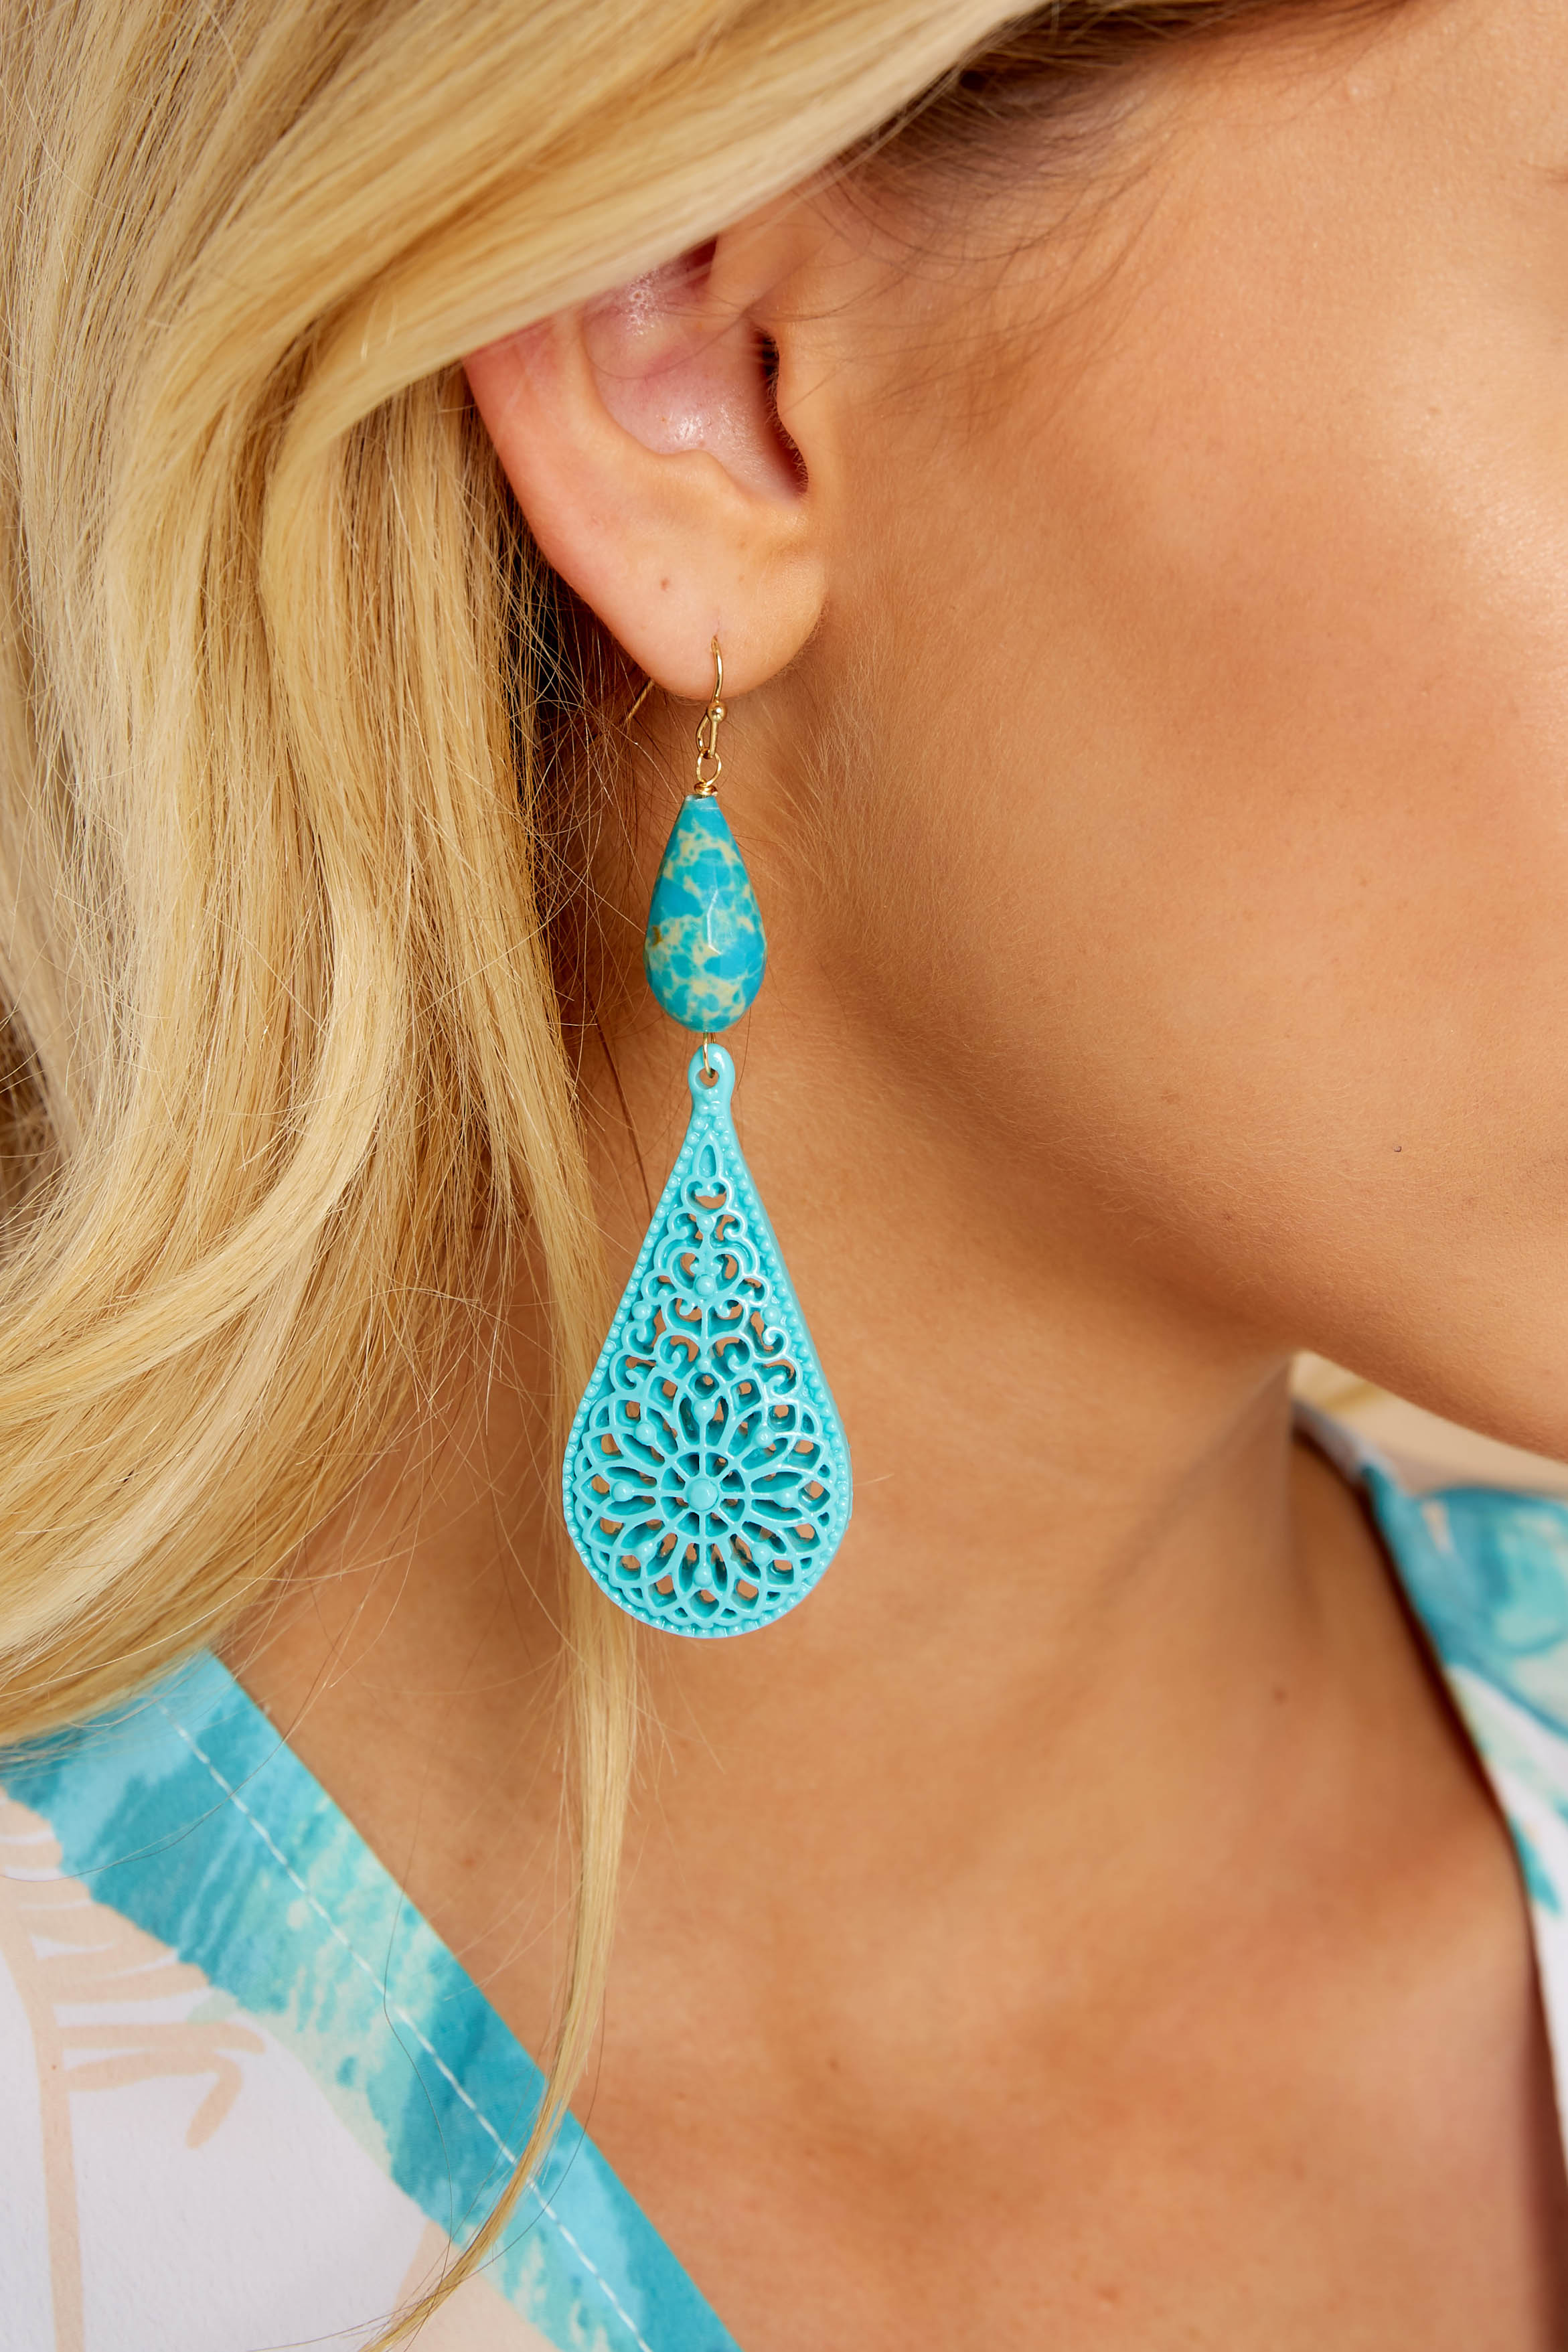 Waiting On Perfection Turquoise Earrings